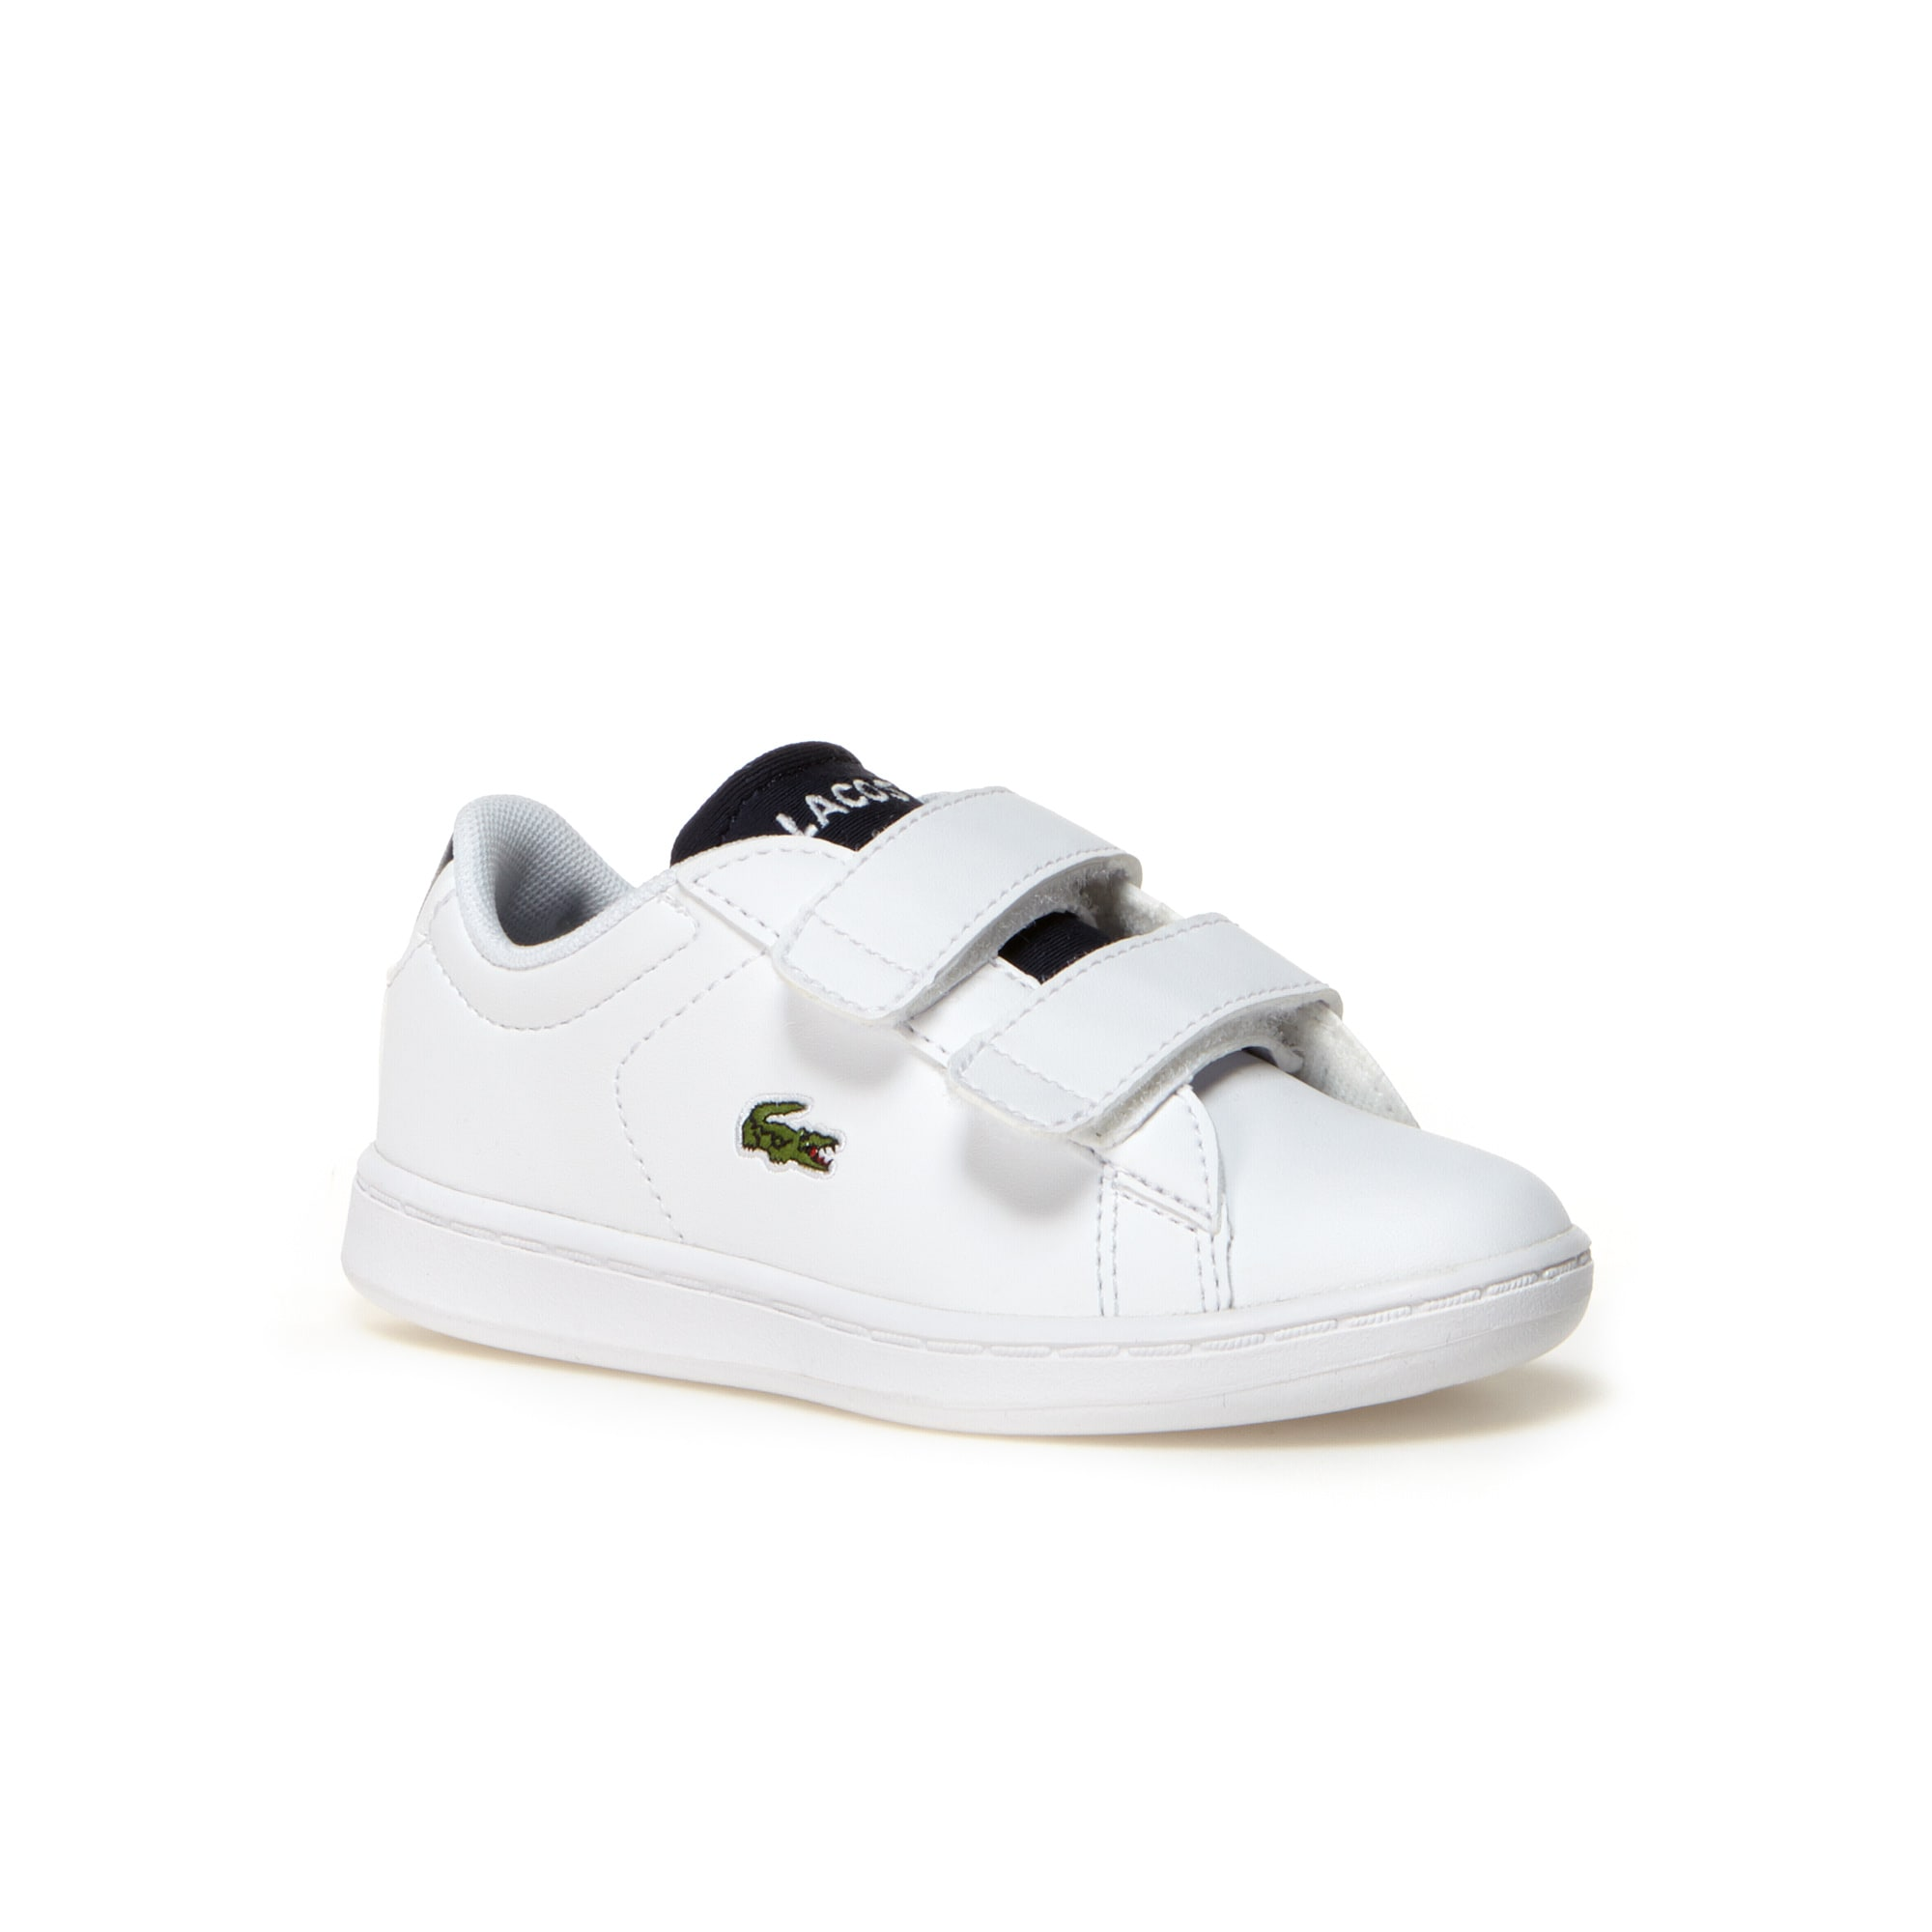 Sneakers Enfant Carnaby Evo à Scratchs